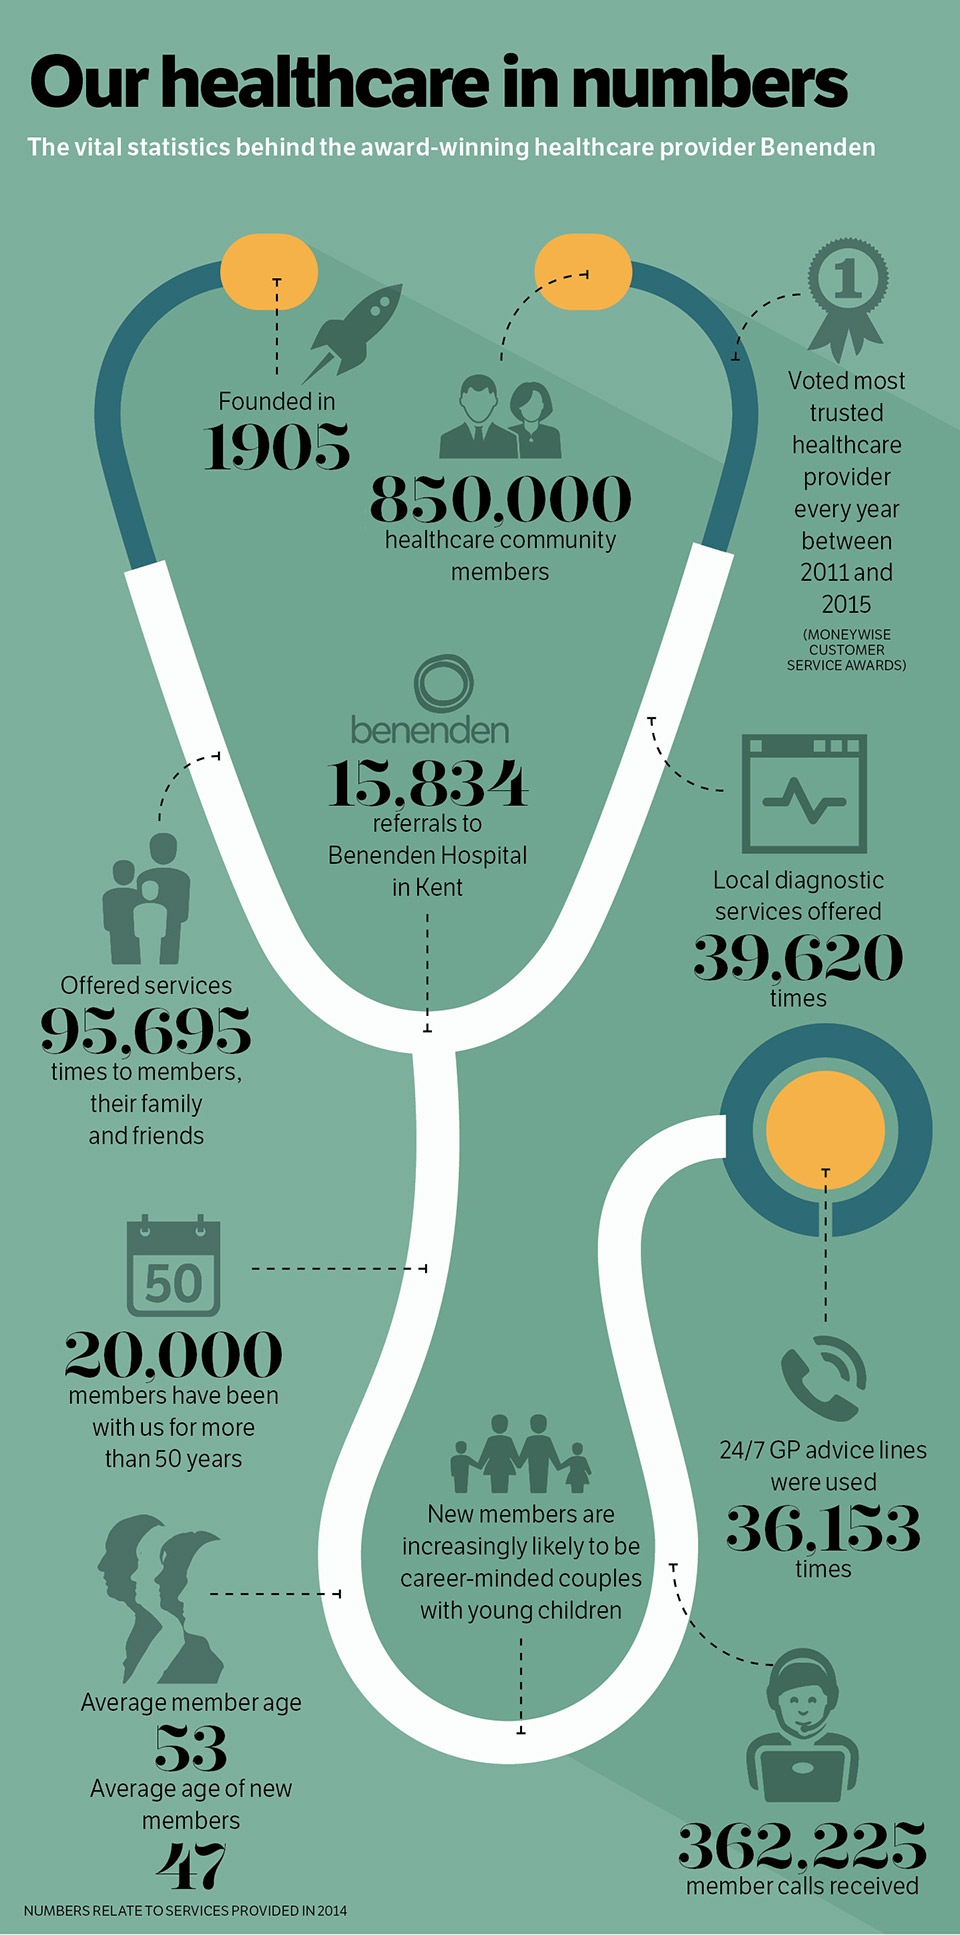 Our healthcare in numbers